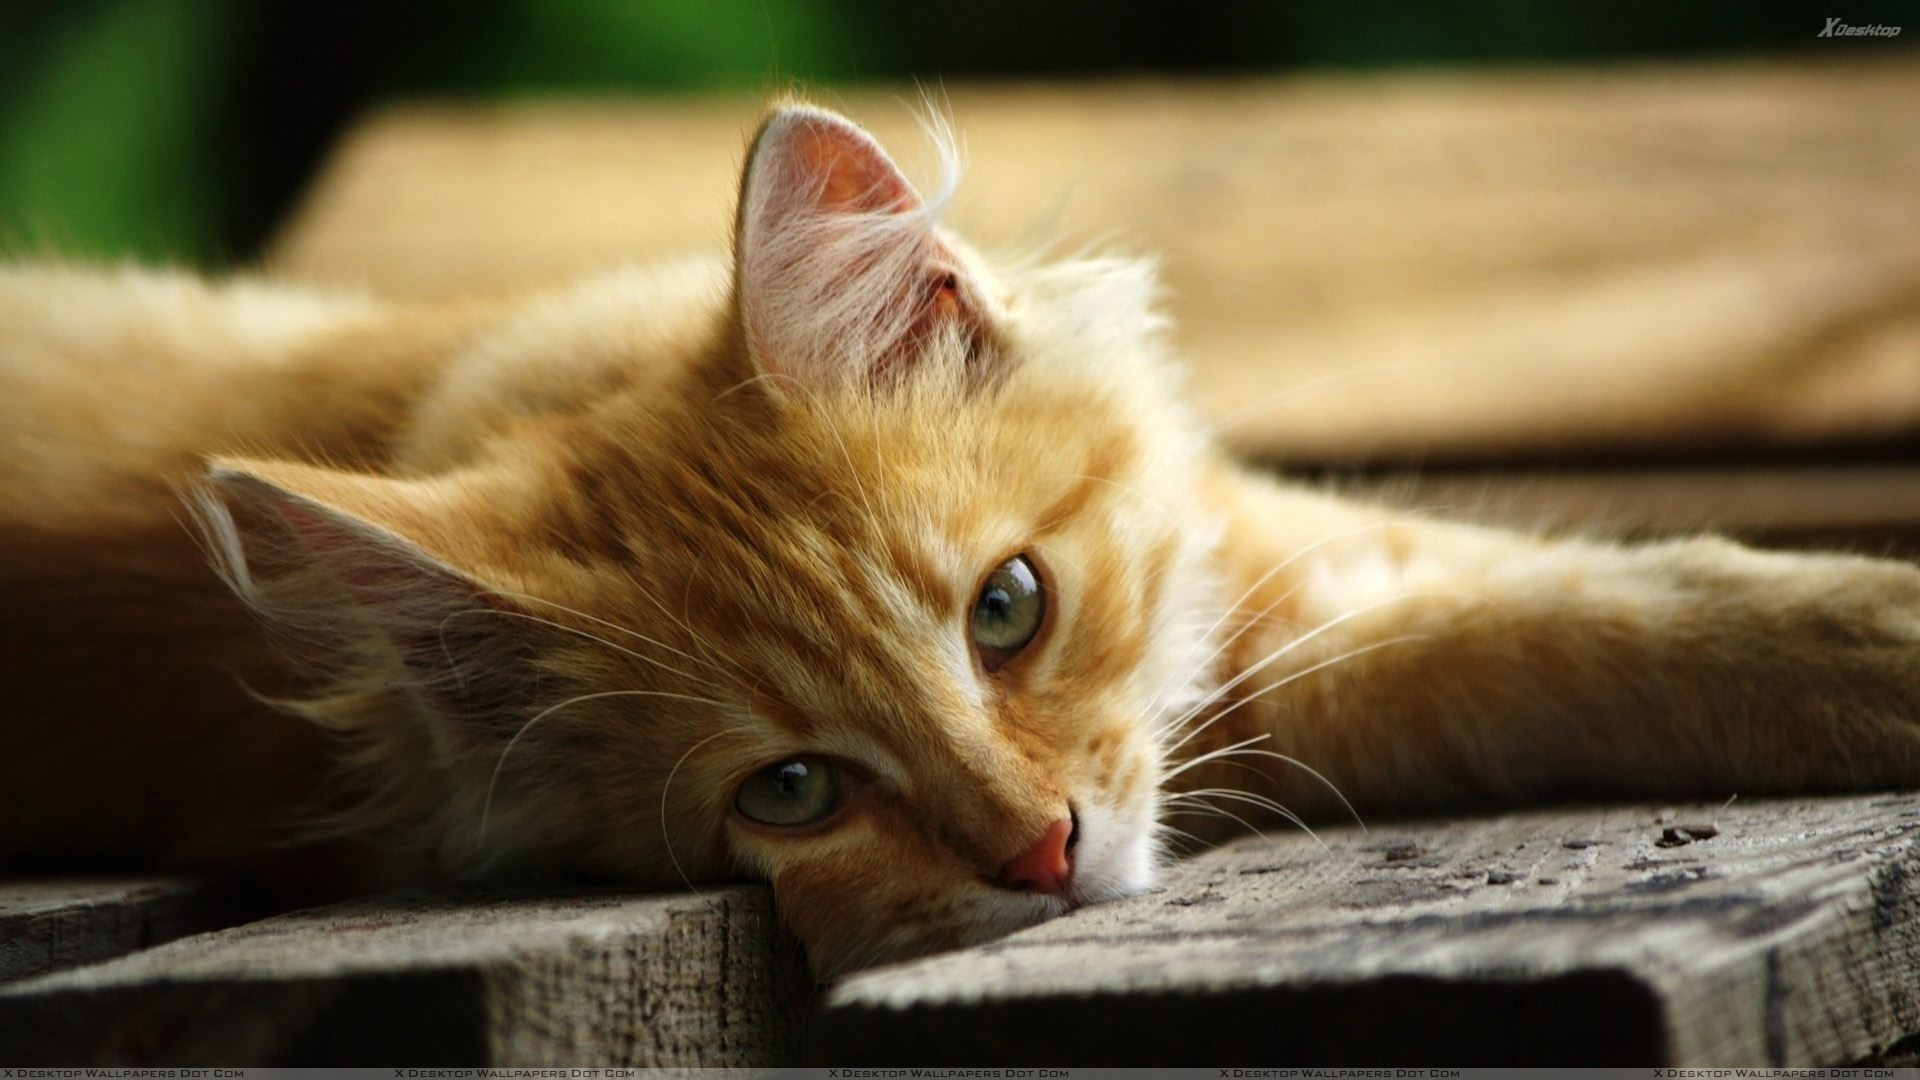 10 Best Hd Cute Cat Wallpapers Full Hd 1080p For Pc: HD Cat Wallpapers 1920x1080